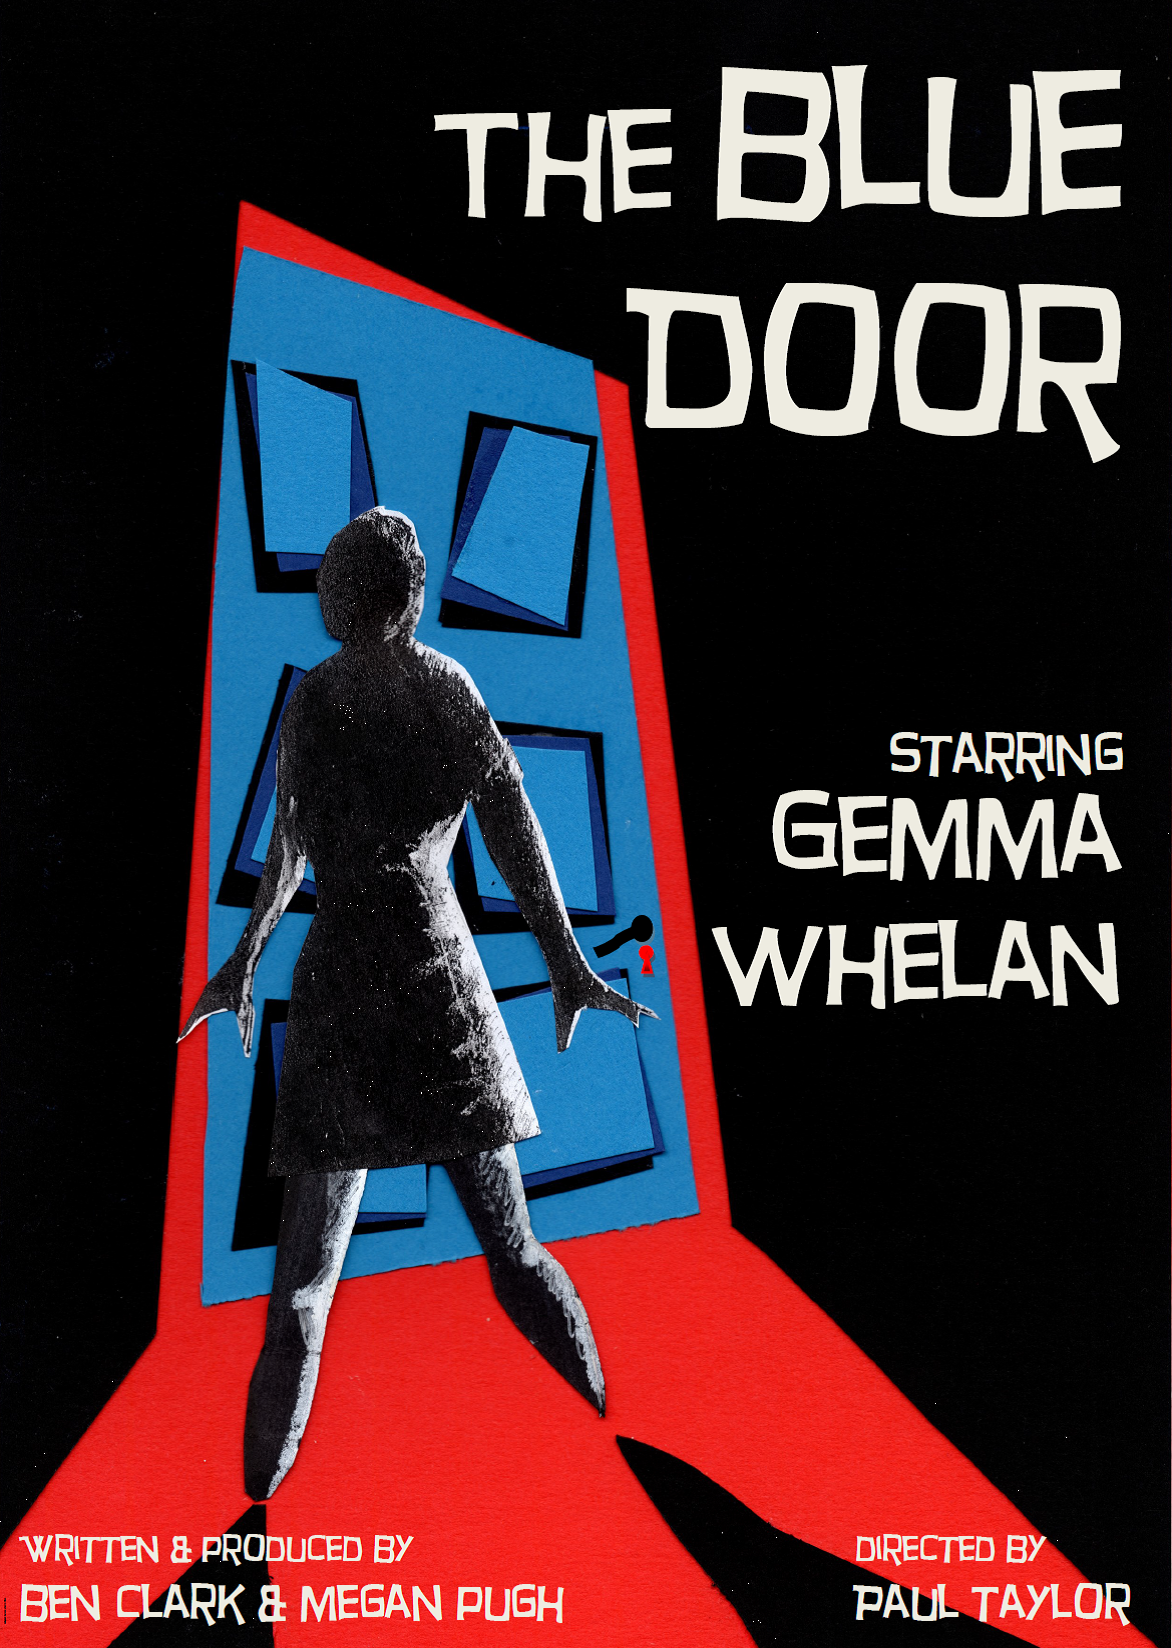 The Blue Door Poster Pic.png